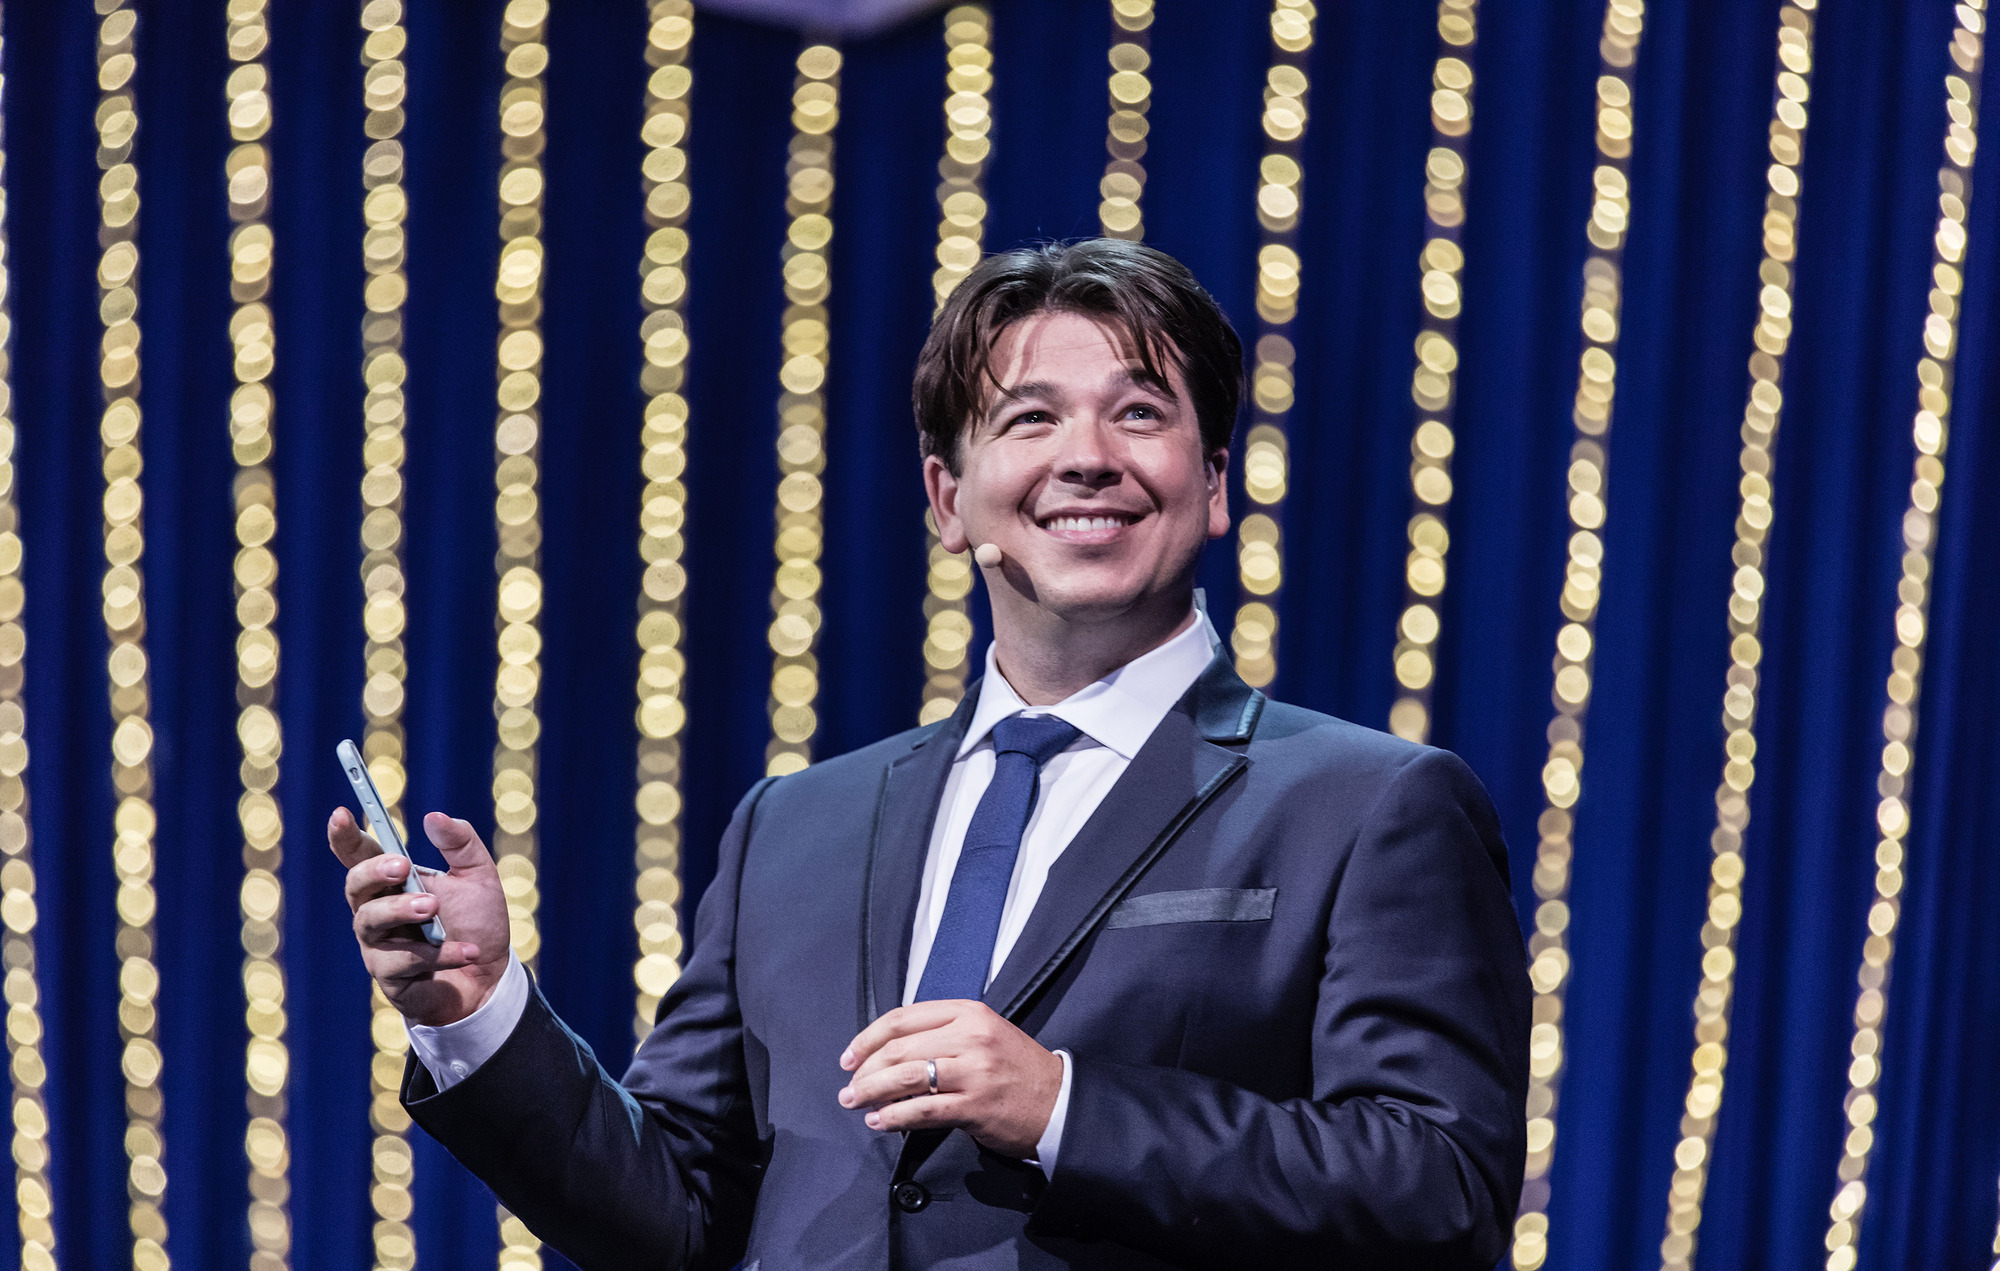 Michael McIntyre: 'I woke up with the whole of Westlife!'